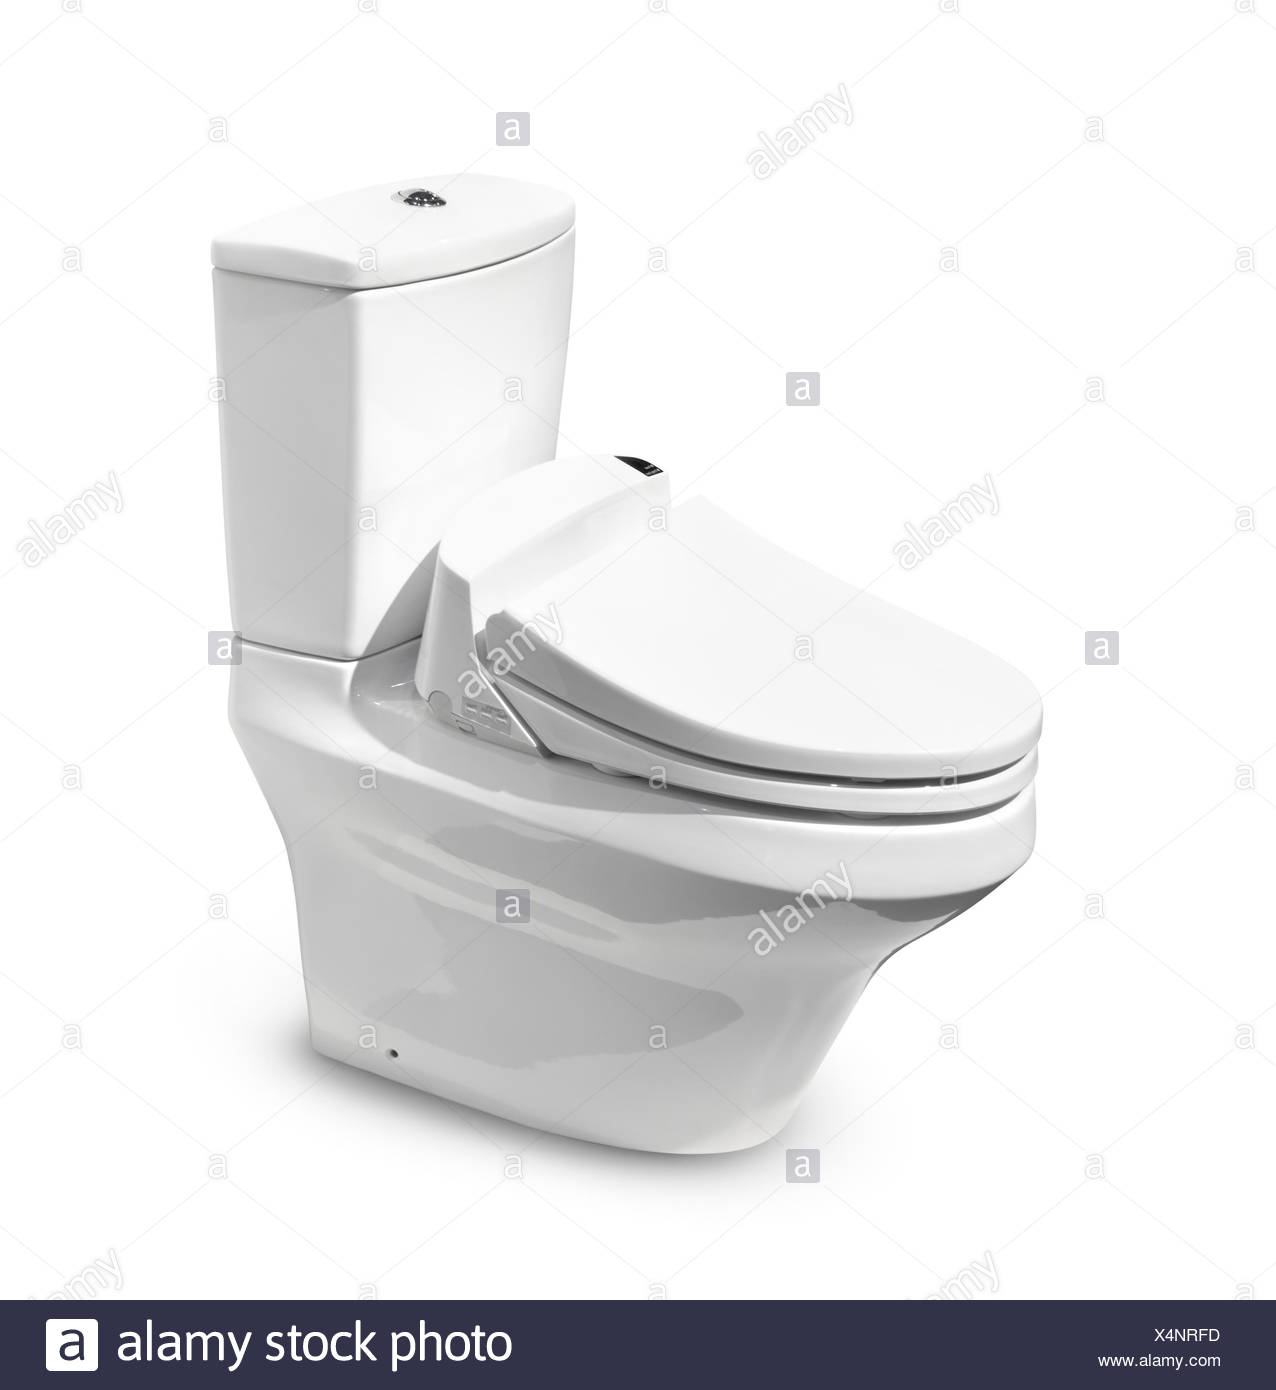 Hightech-Toto WC Washlet Sitz Stockfoto, Bild: 278303969 - Alamy